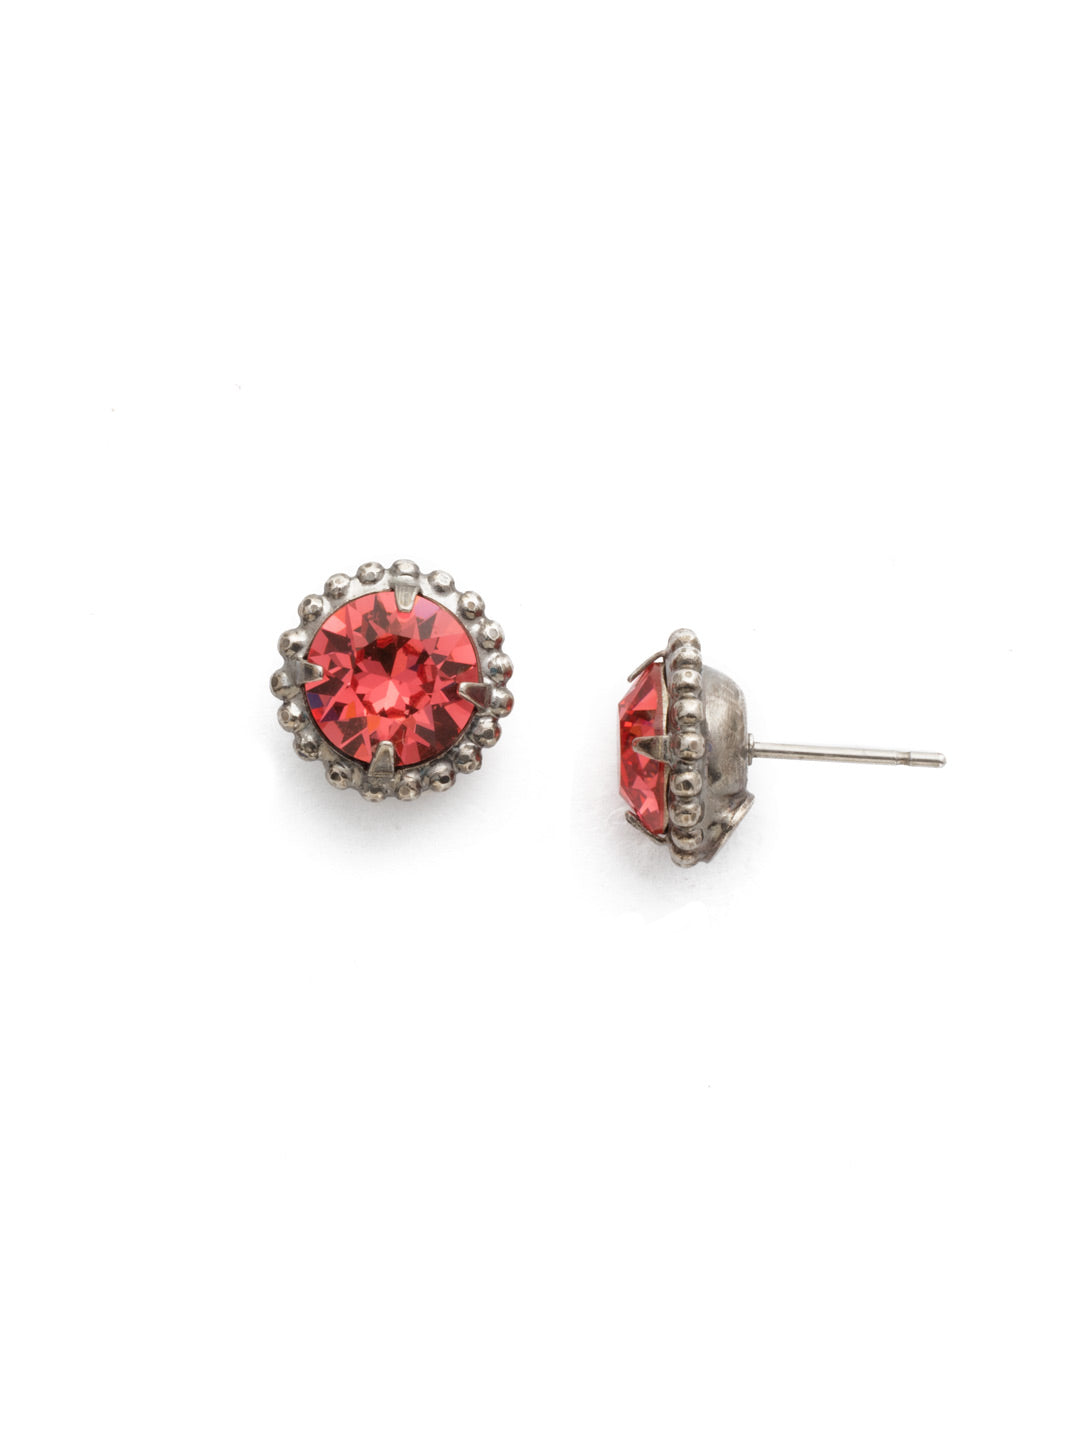 Simplicity Stud Earrings - EBY38ASCRL